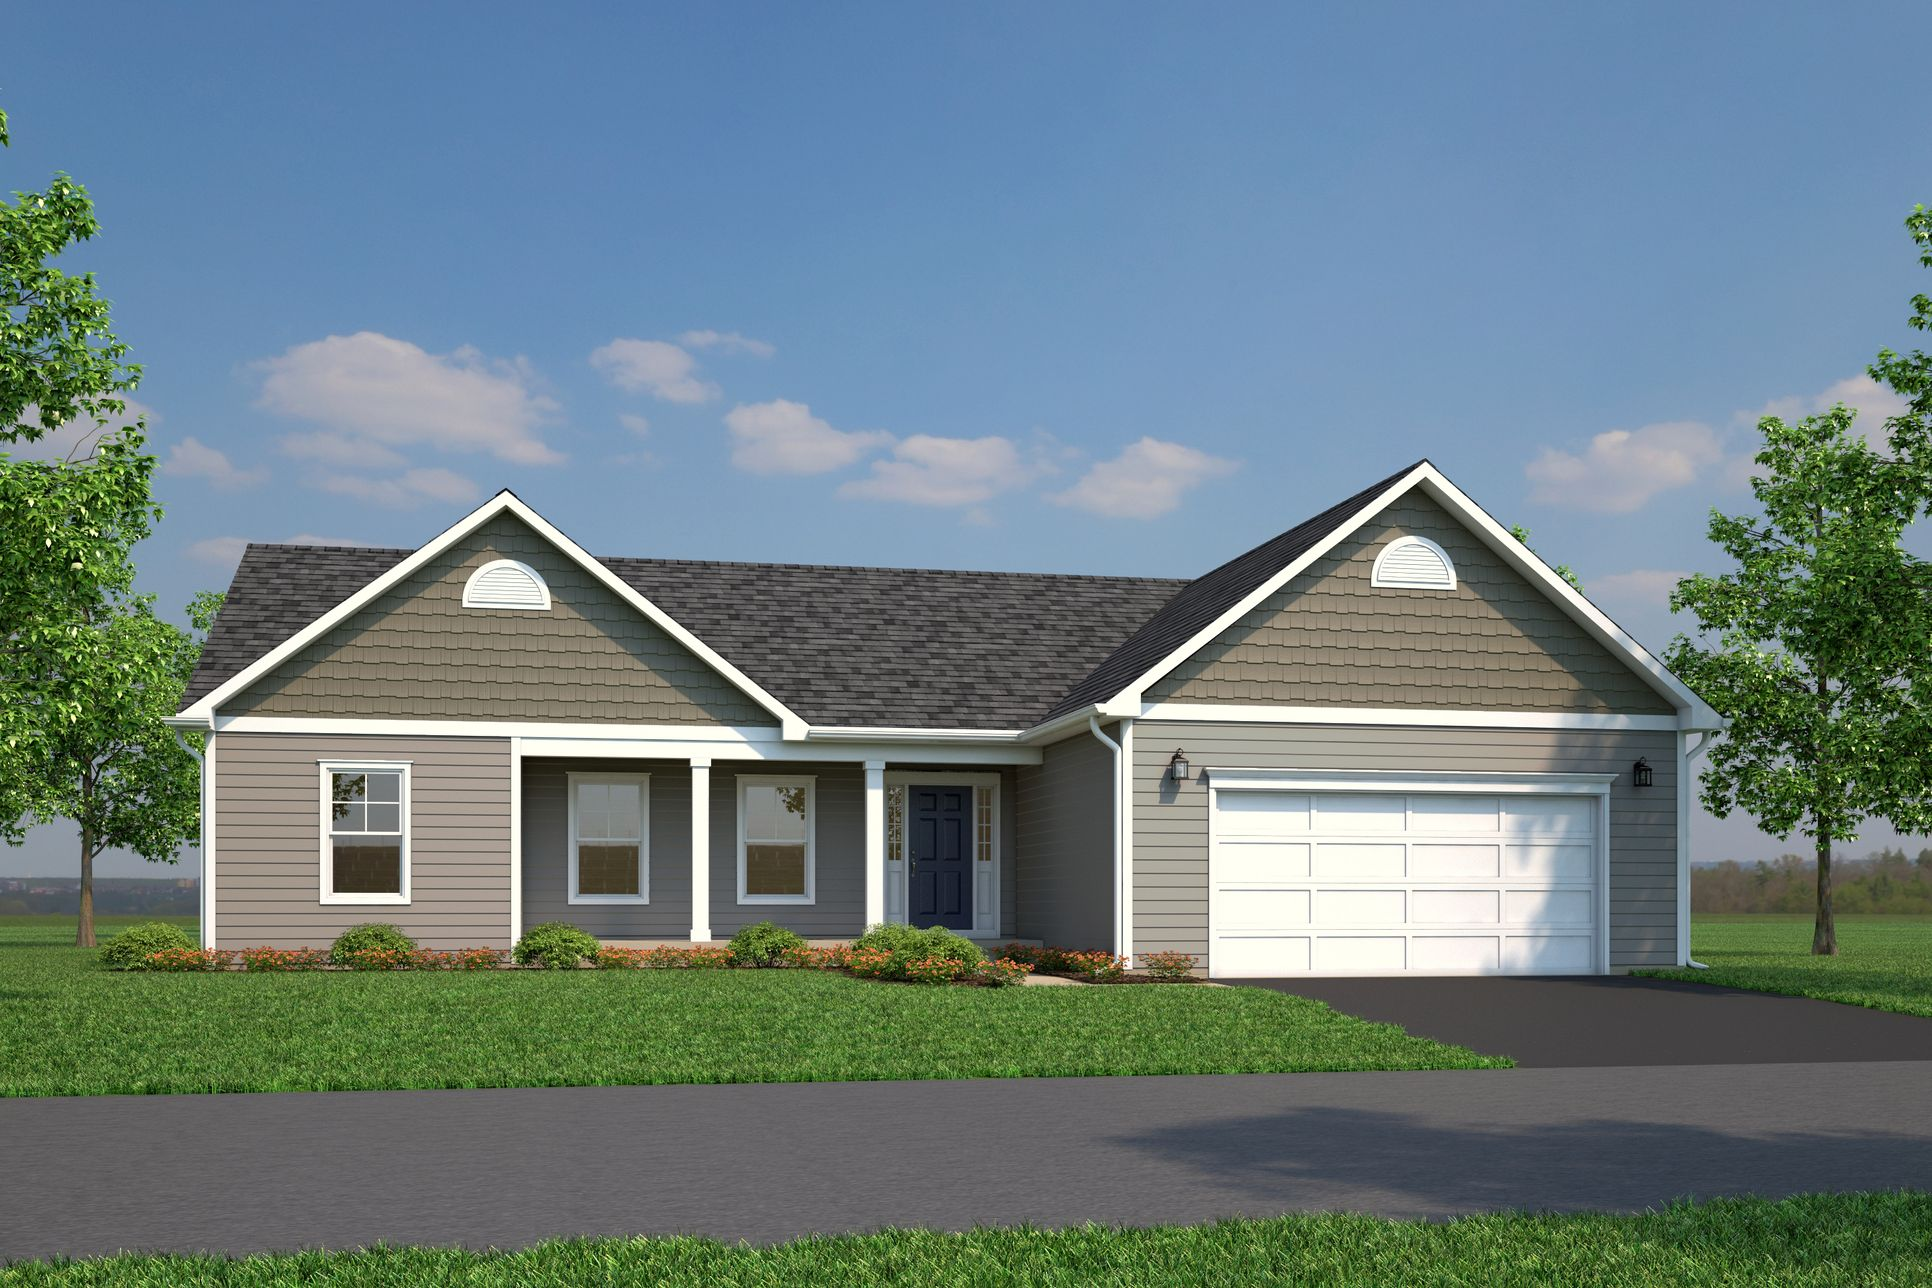 Carson - Garage Right - Front Exterior for Bridle Creek:Rendering of the front of a garage right Carson Model home in Bridle Creek Subdivision in Berkeley County, WV.